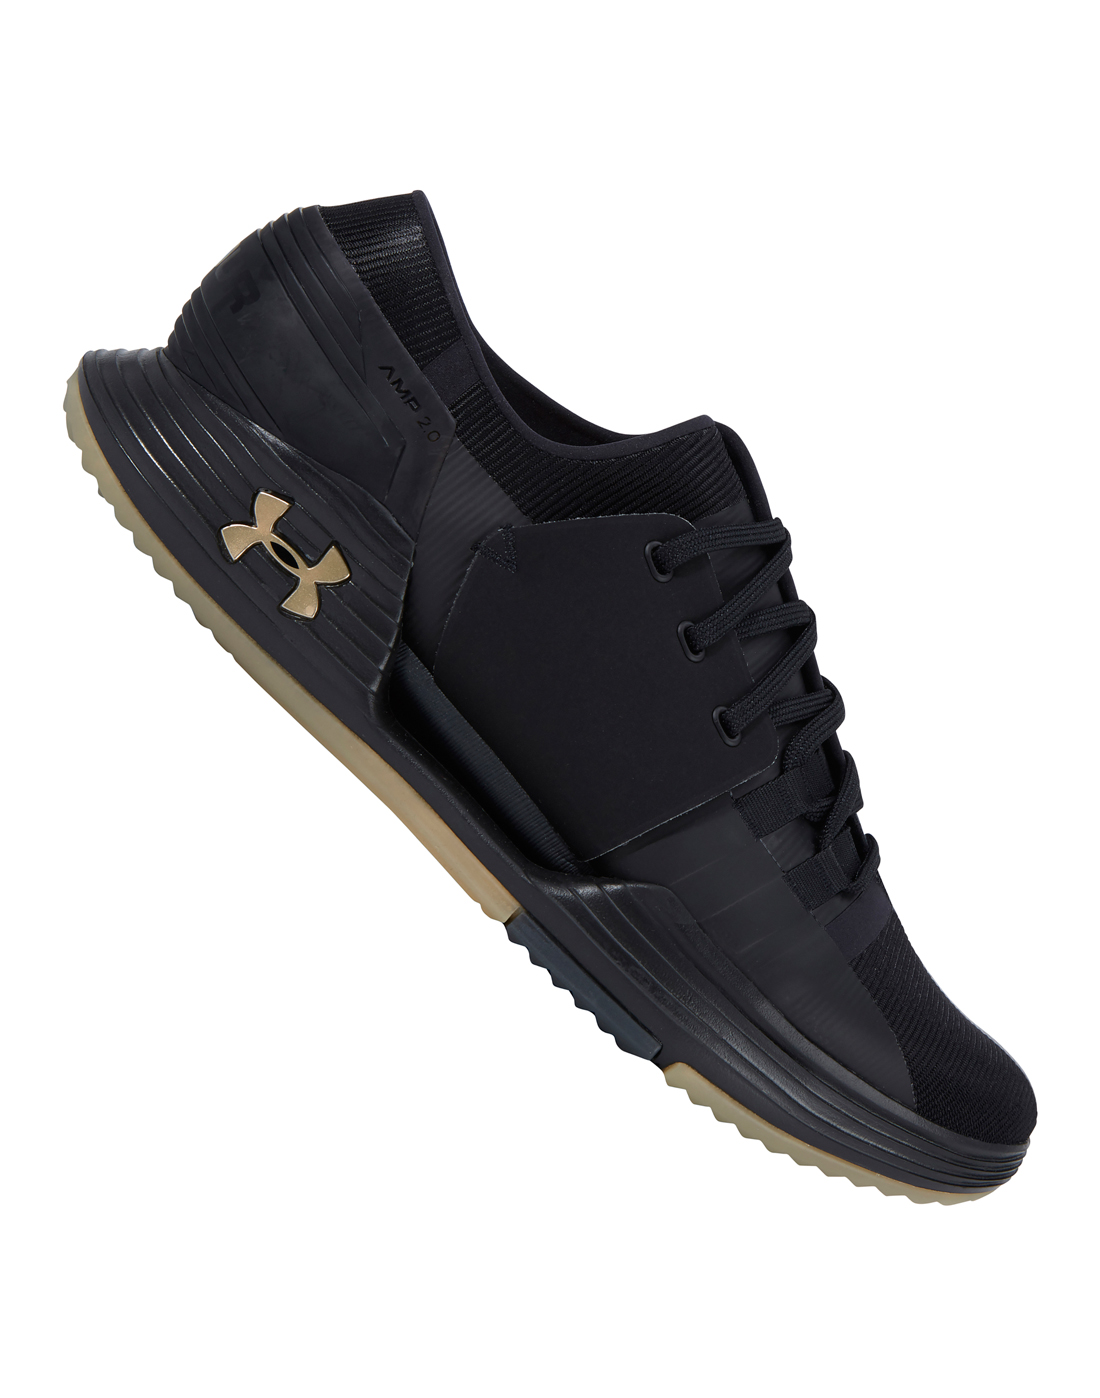 Under Armour SpeedFoam AMP 2.0 Mens Training Shoes Black Supportive Gym Trainers